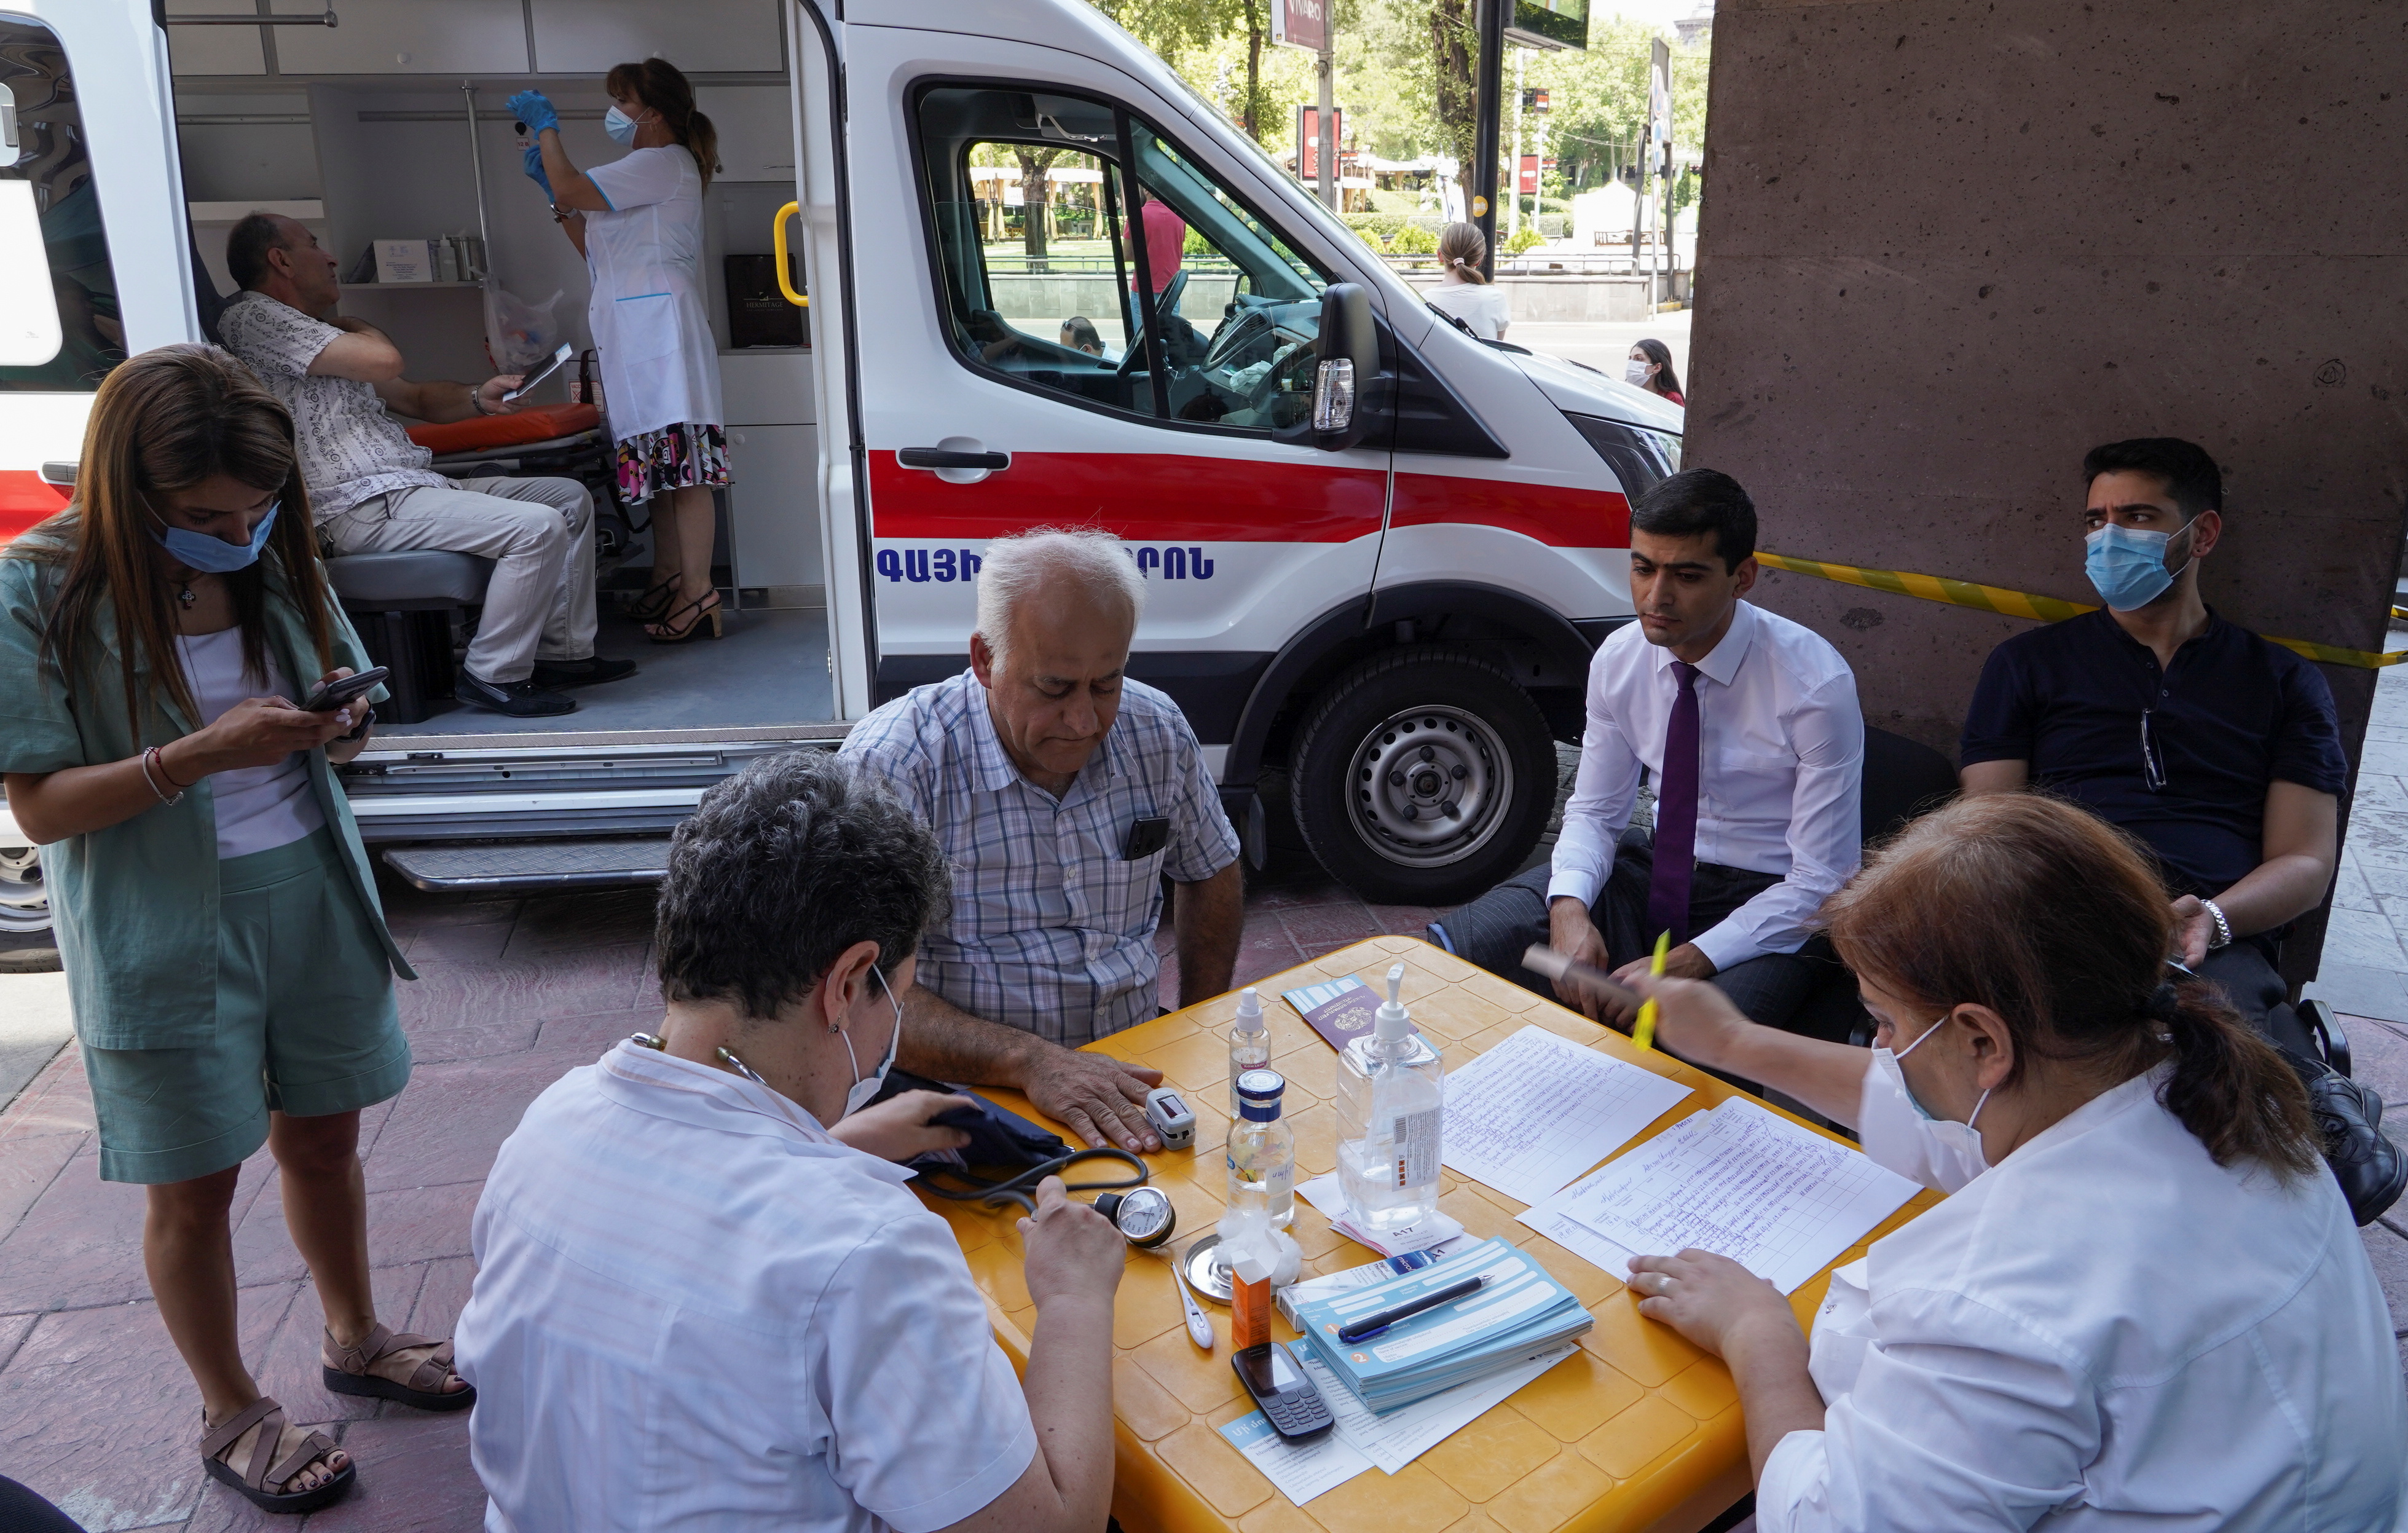 Iranian citizens prepare to get vaccinated with AstraZeneca vaccine against the coronavirus disease (COVID-19) at a mobile vaccination centre in Yerevan, Armenia July 19, 2021.  REUTERS/Artem Mikryukov